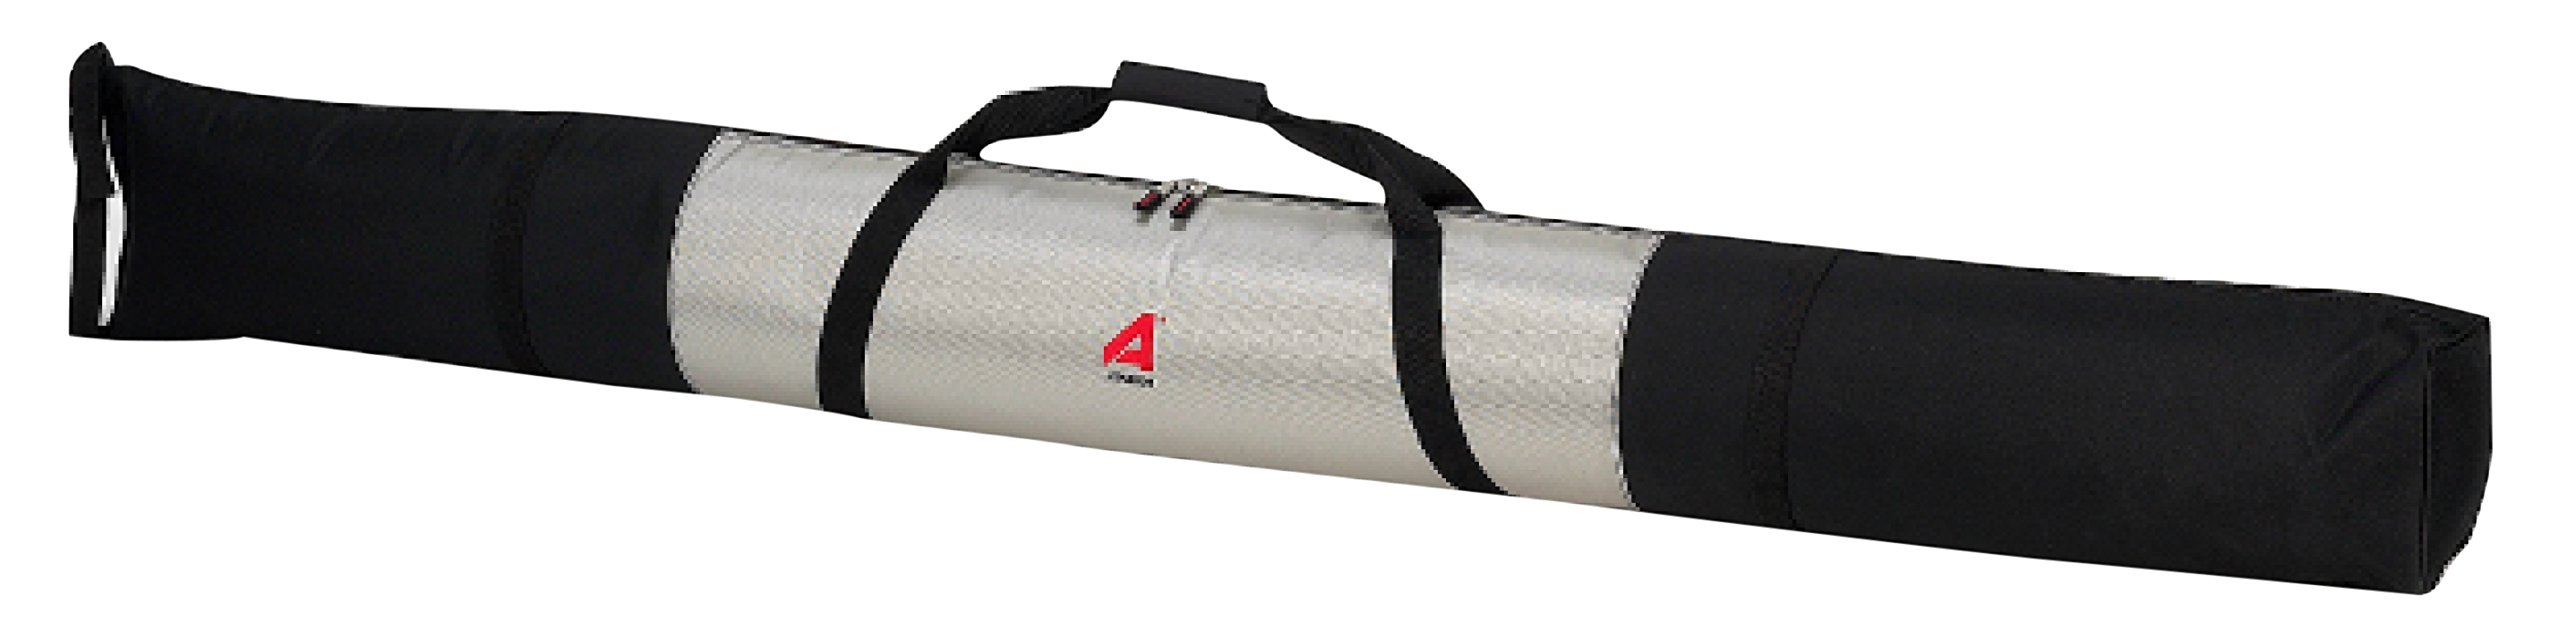 Athalon Single Ski Bag Unpadded - 185cm, Silver/Black by Athalon